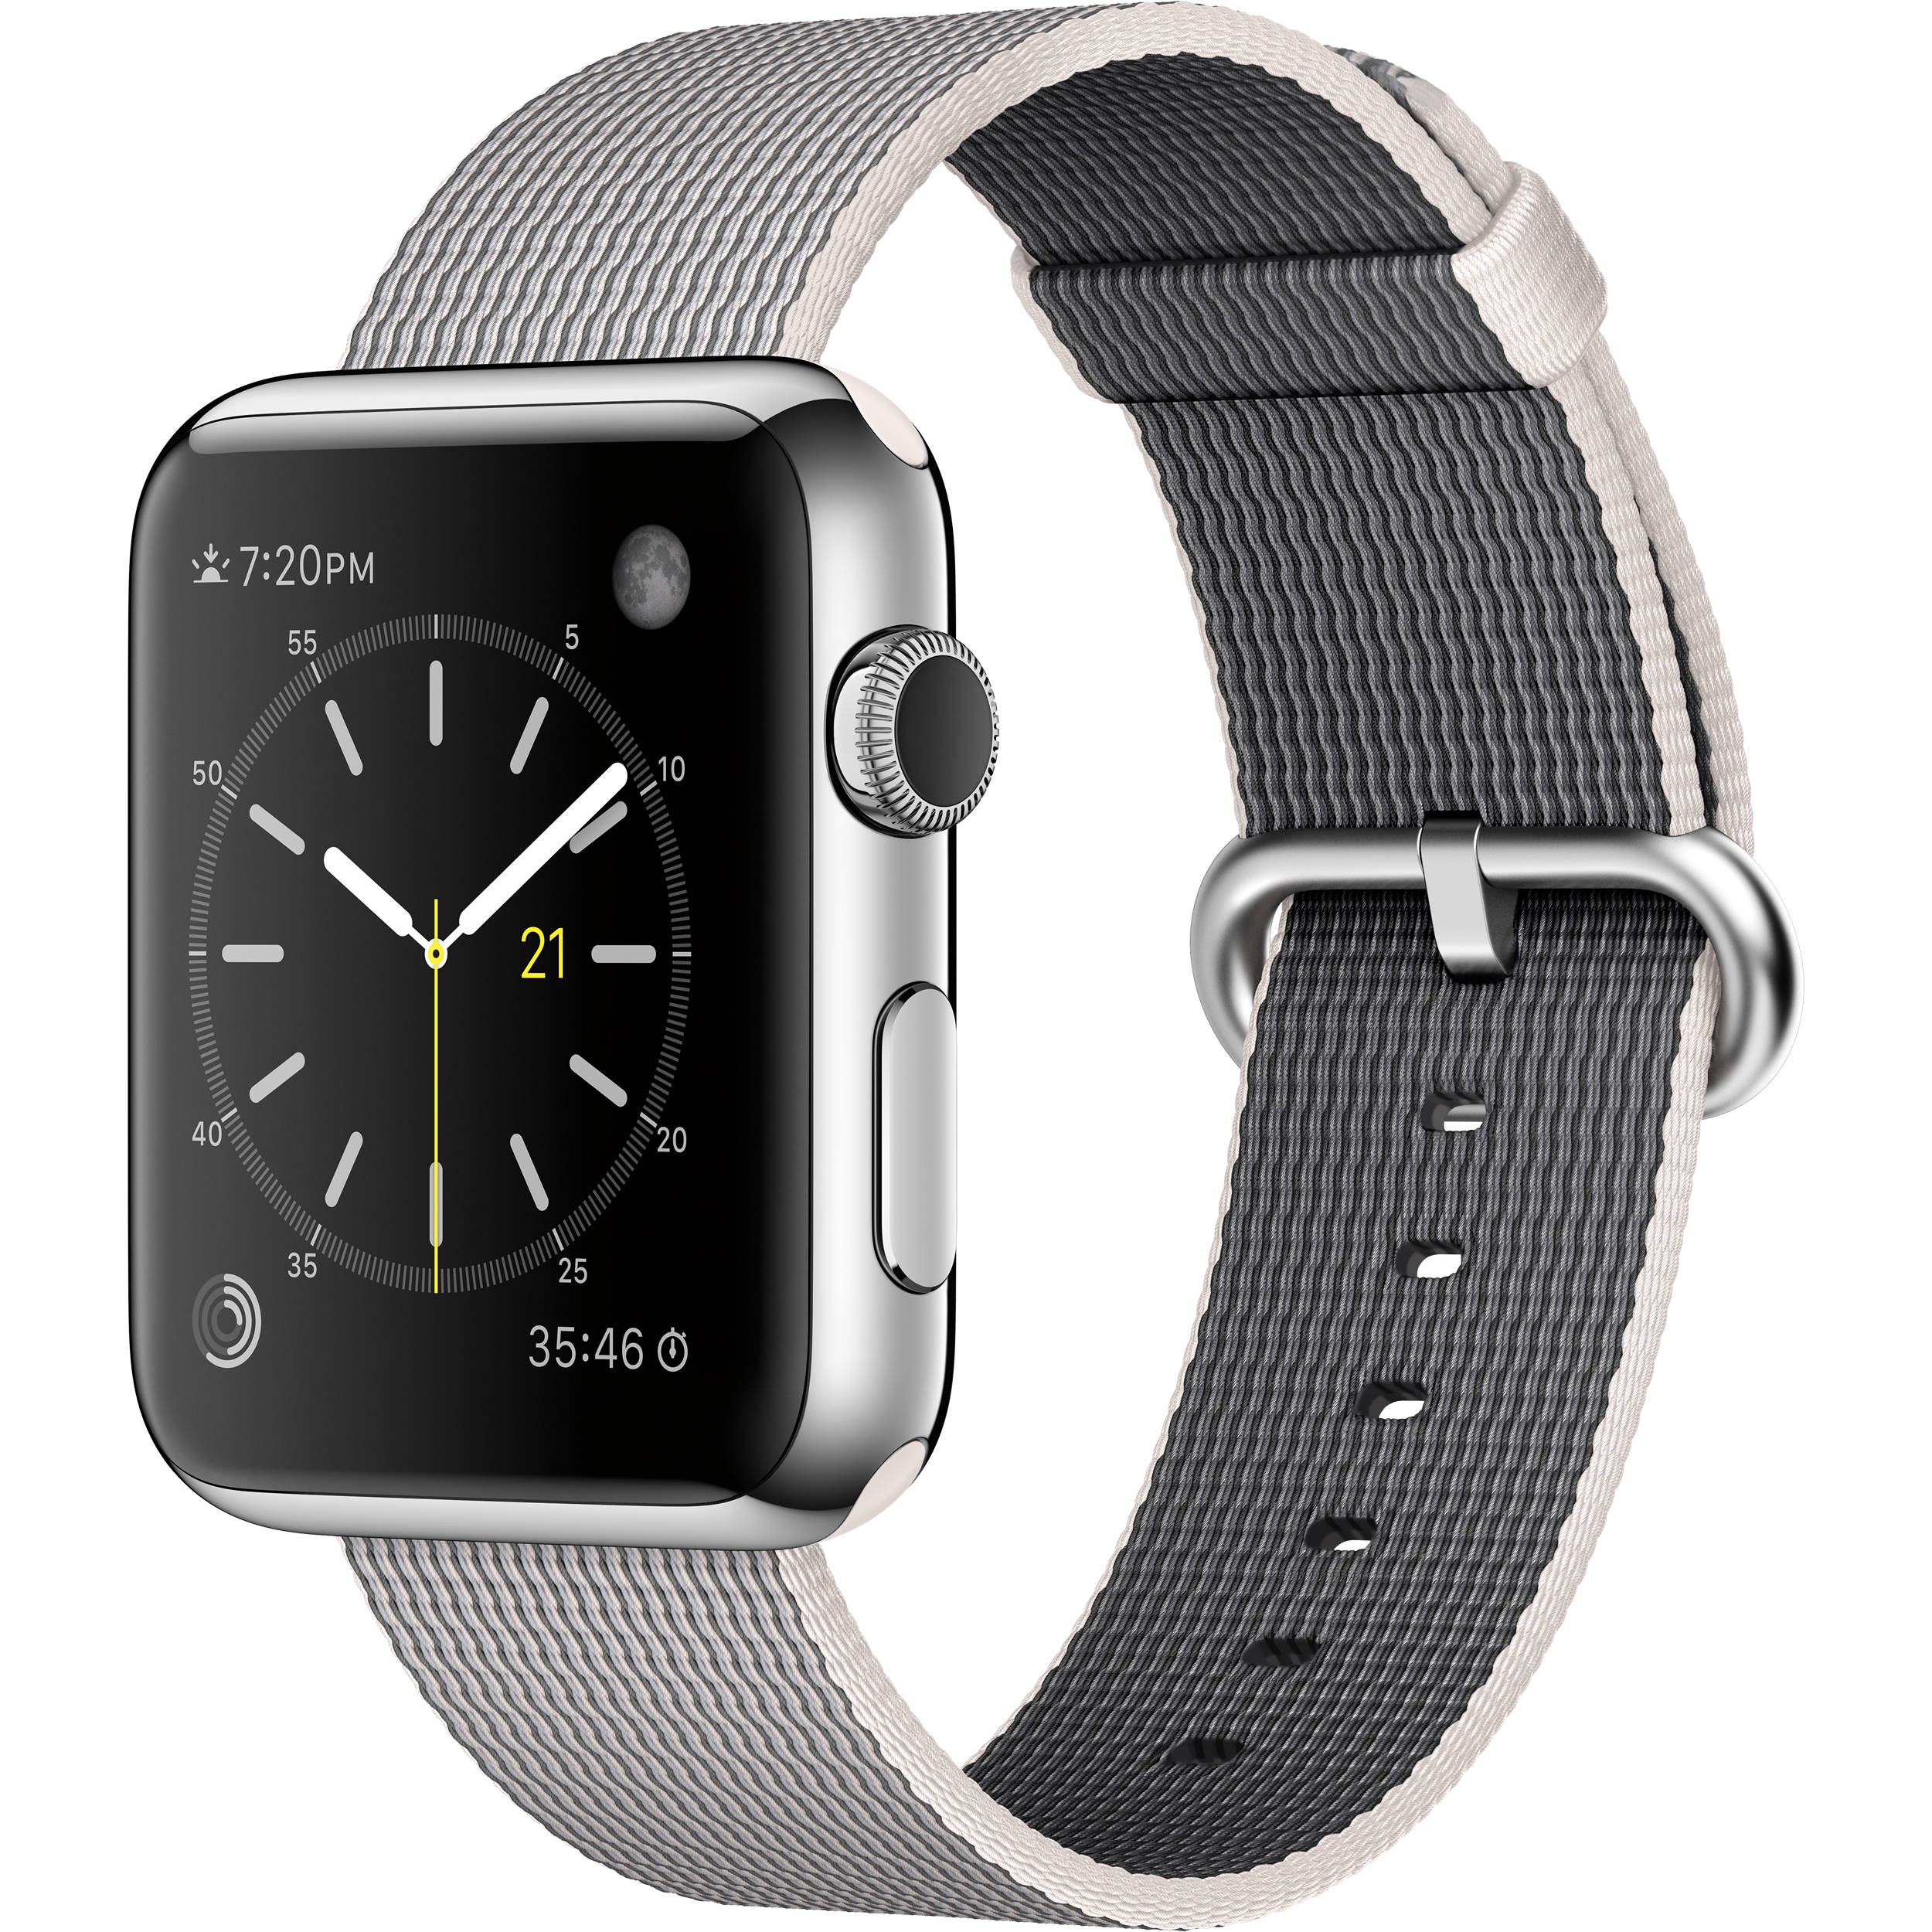 sport loop watches milanese wrist products steel watch eternitizzz apple stainless magnetic mesh for series iwatch edition fully silver closure img clasp band replacement bracelet strap